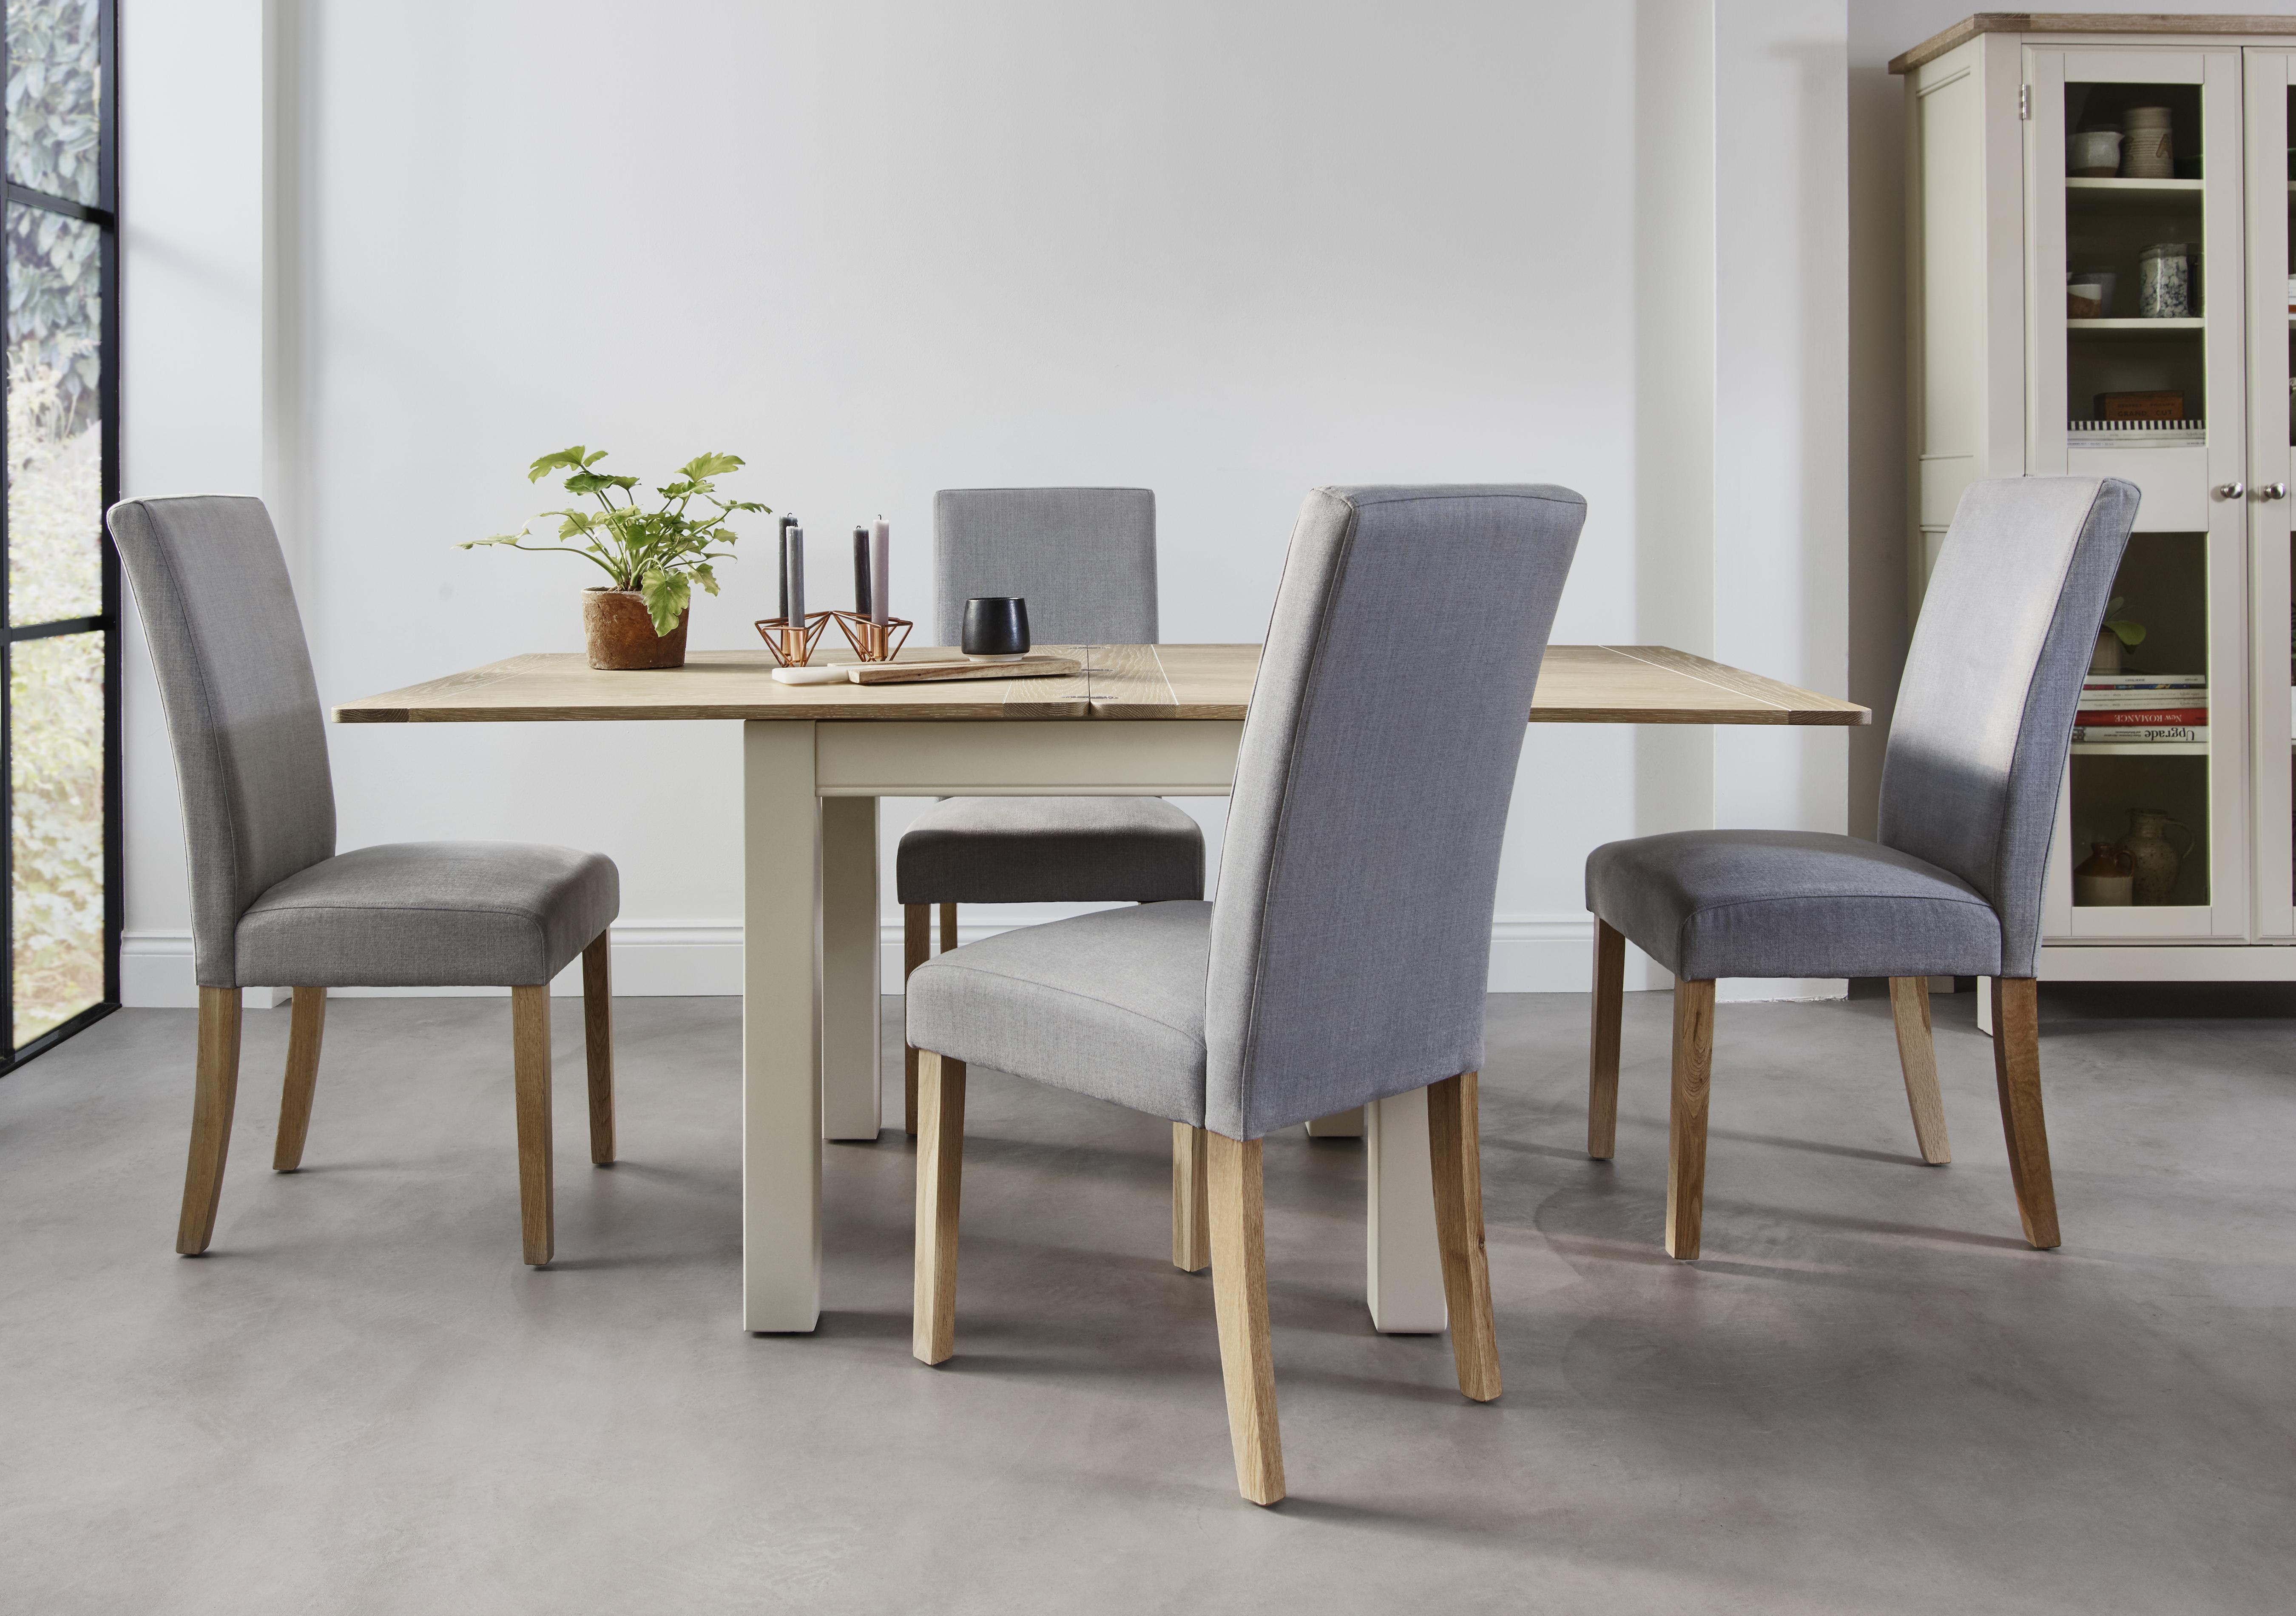 & Dining table and chairs sets - Furniture Village